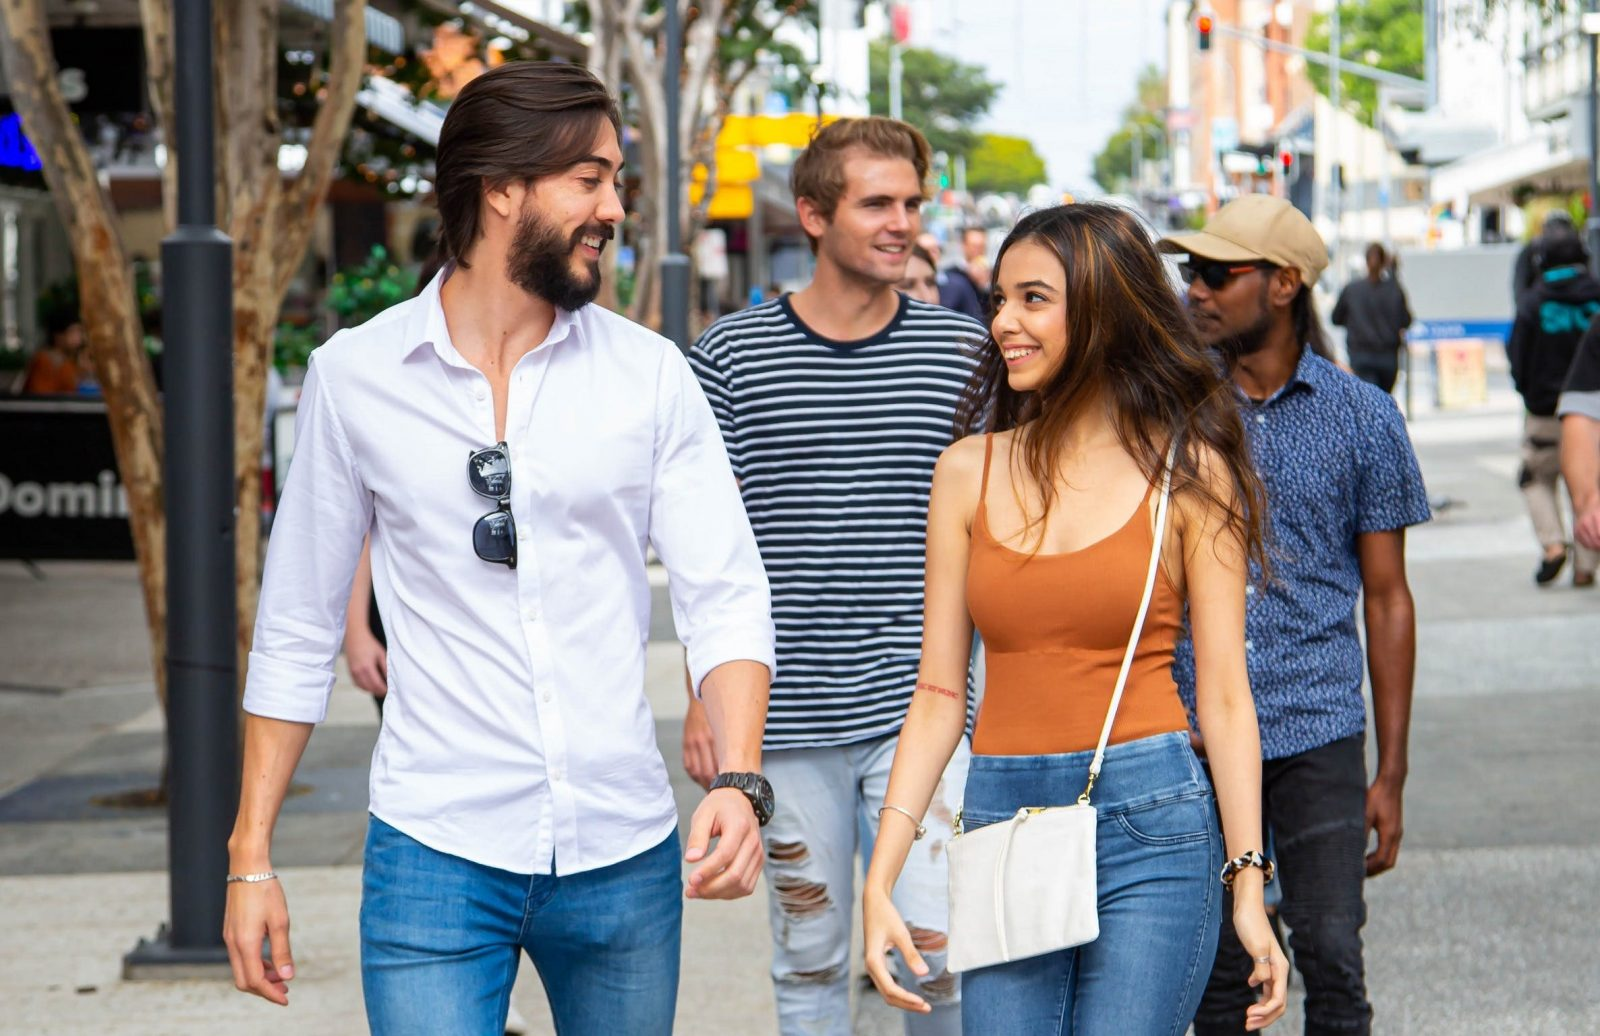 More to see and do in the Fortitude Valley